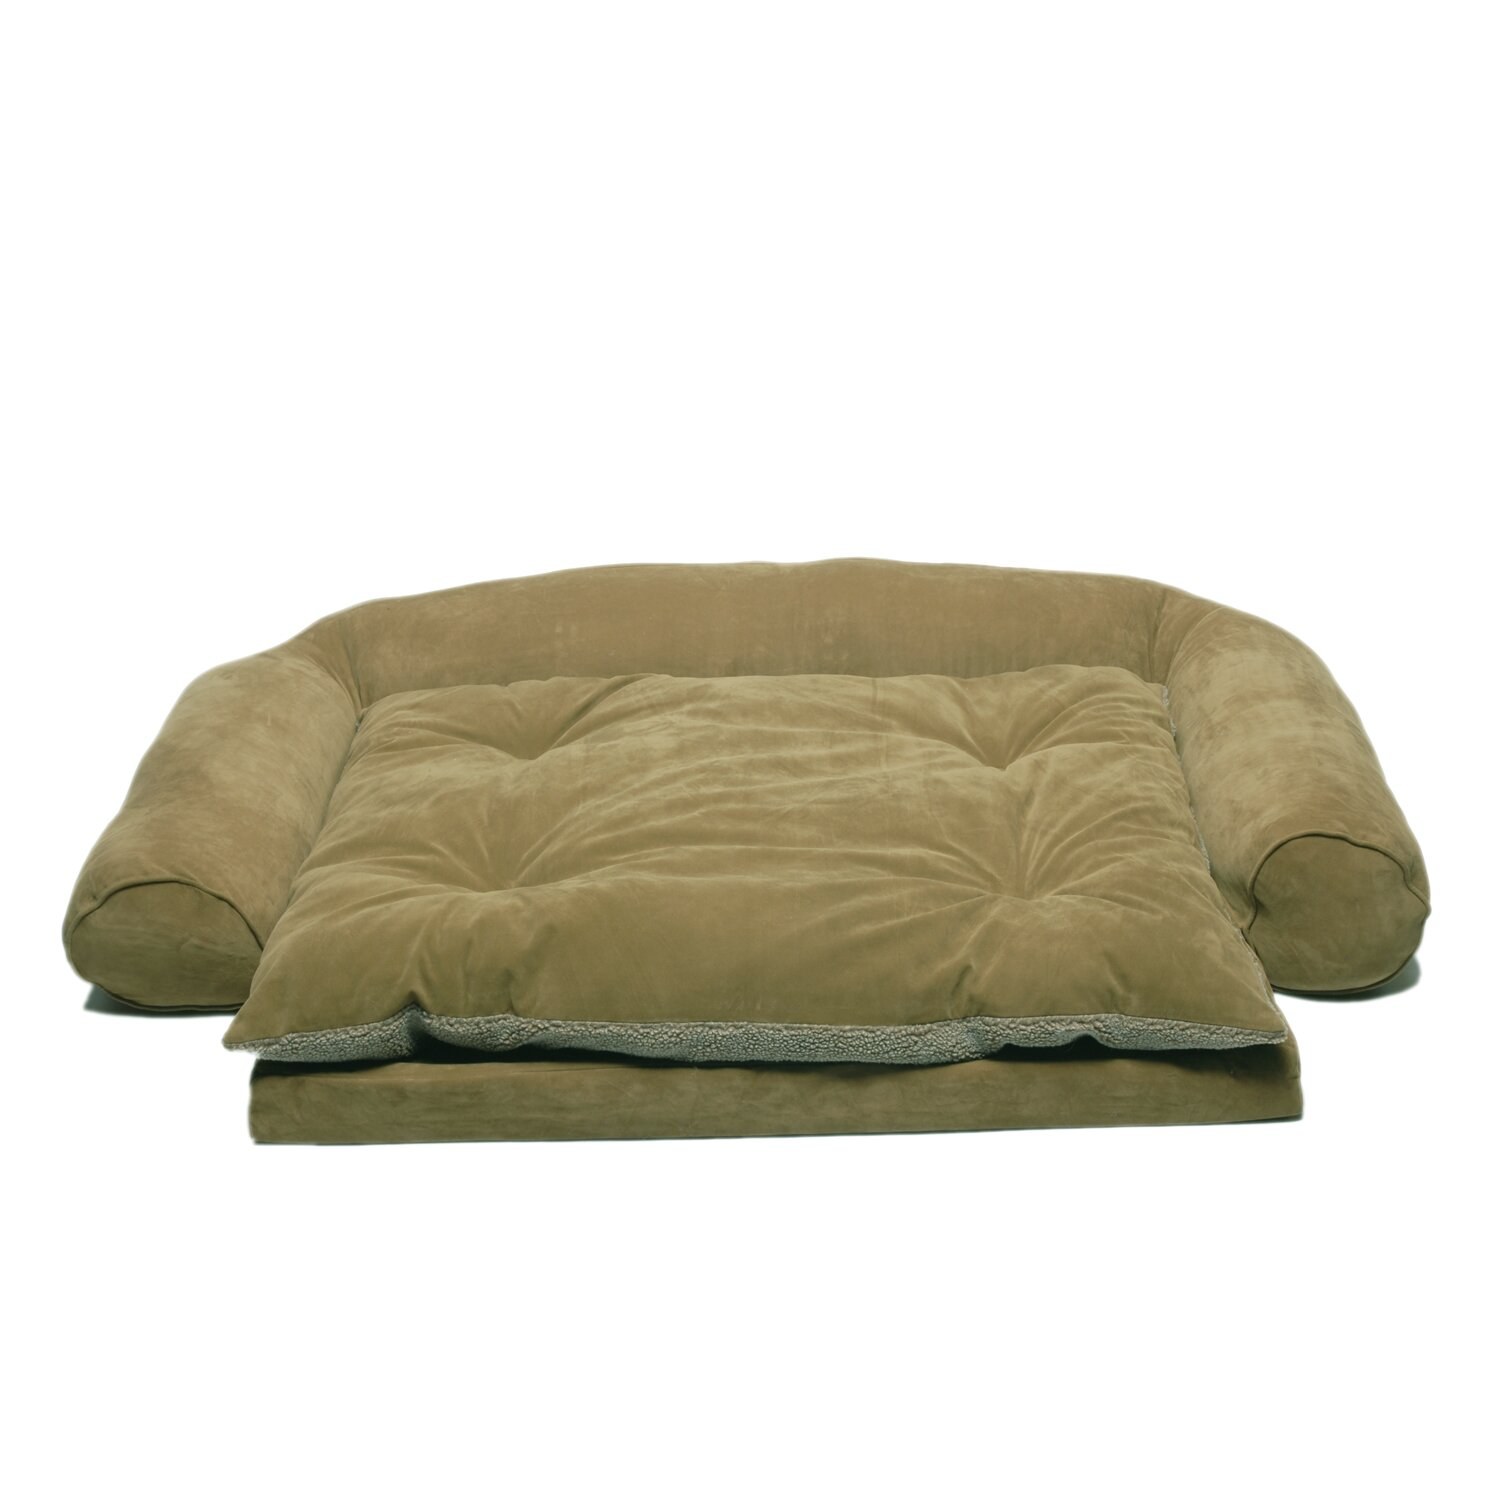 Dog bed couch orvis comfortfill couch dog bed small for Couch polster